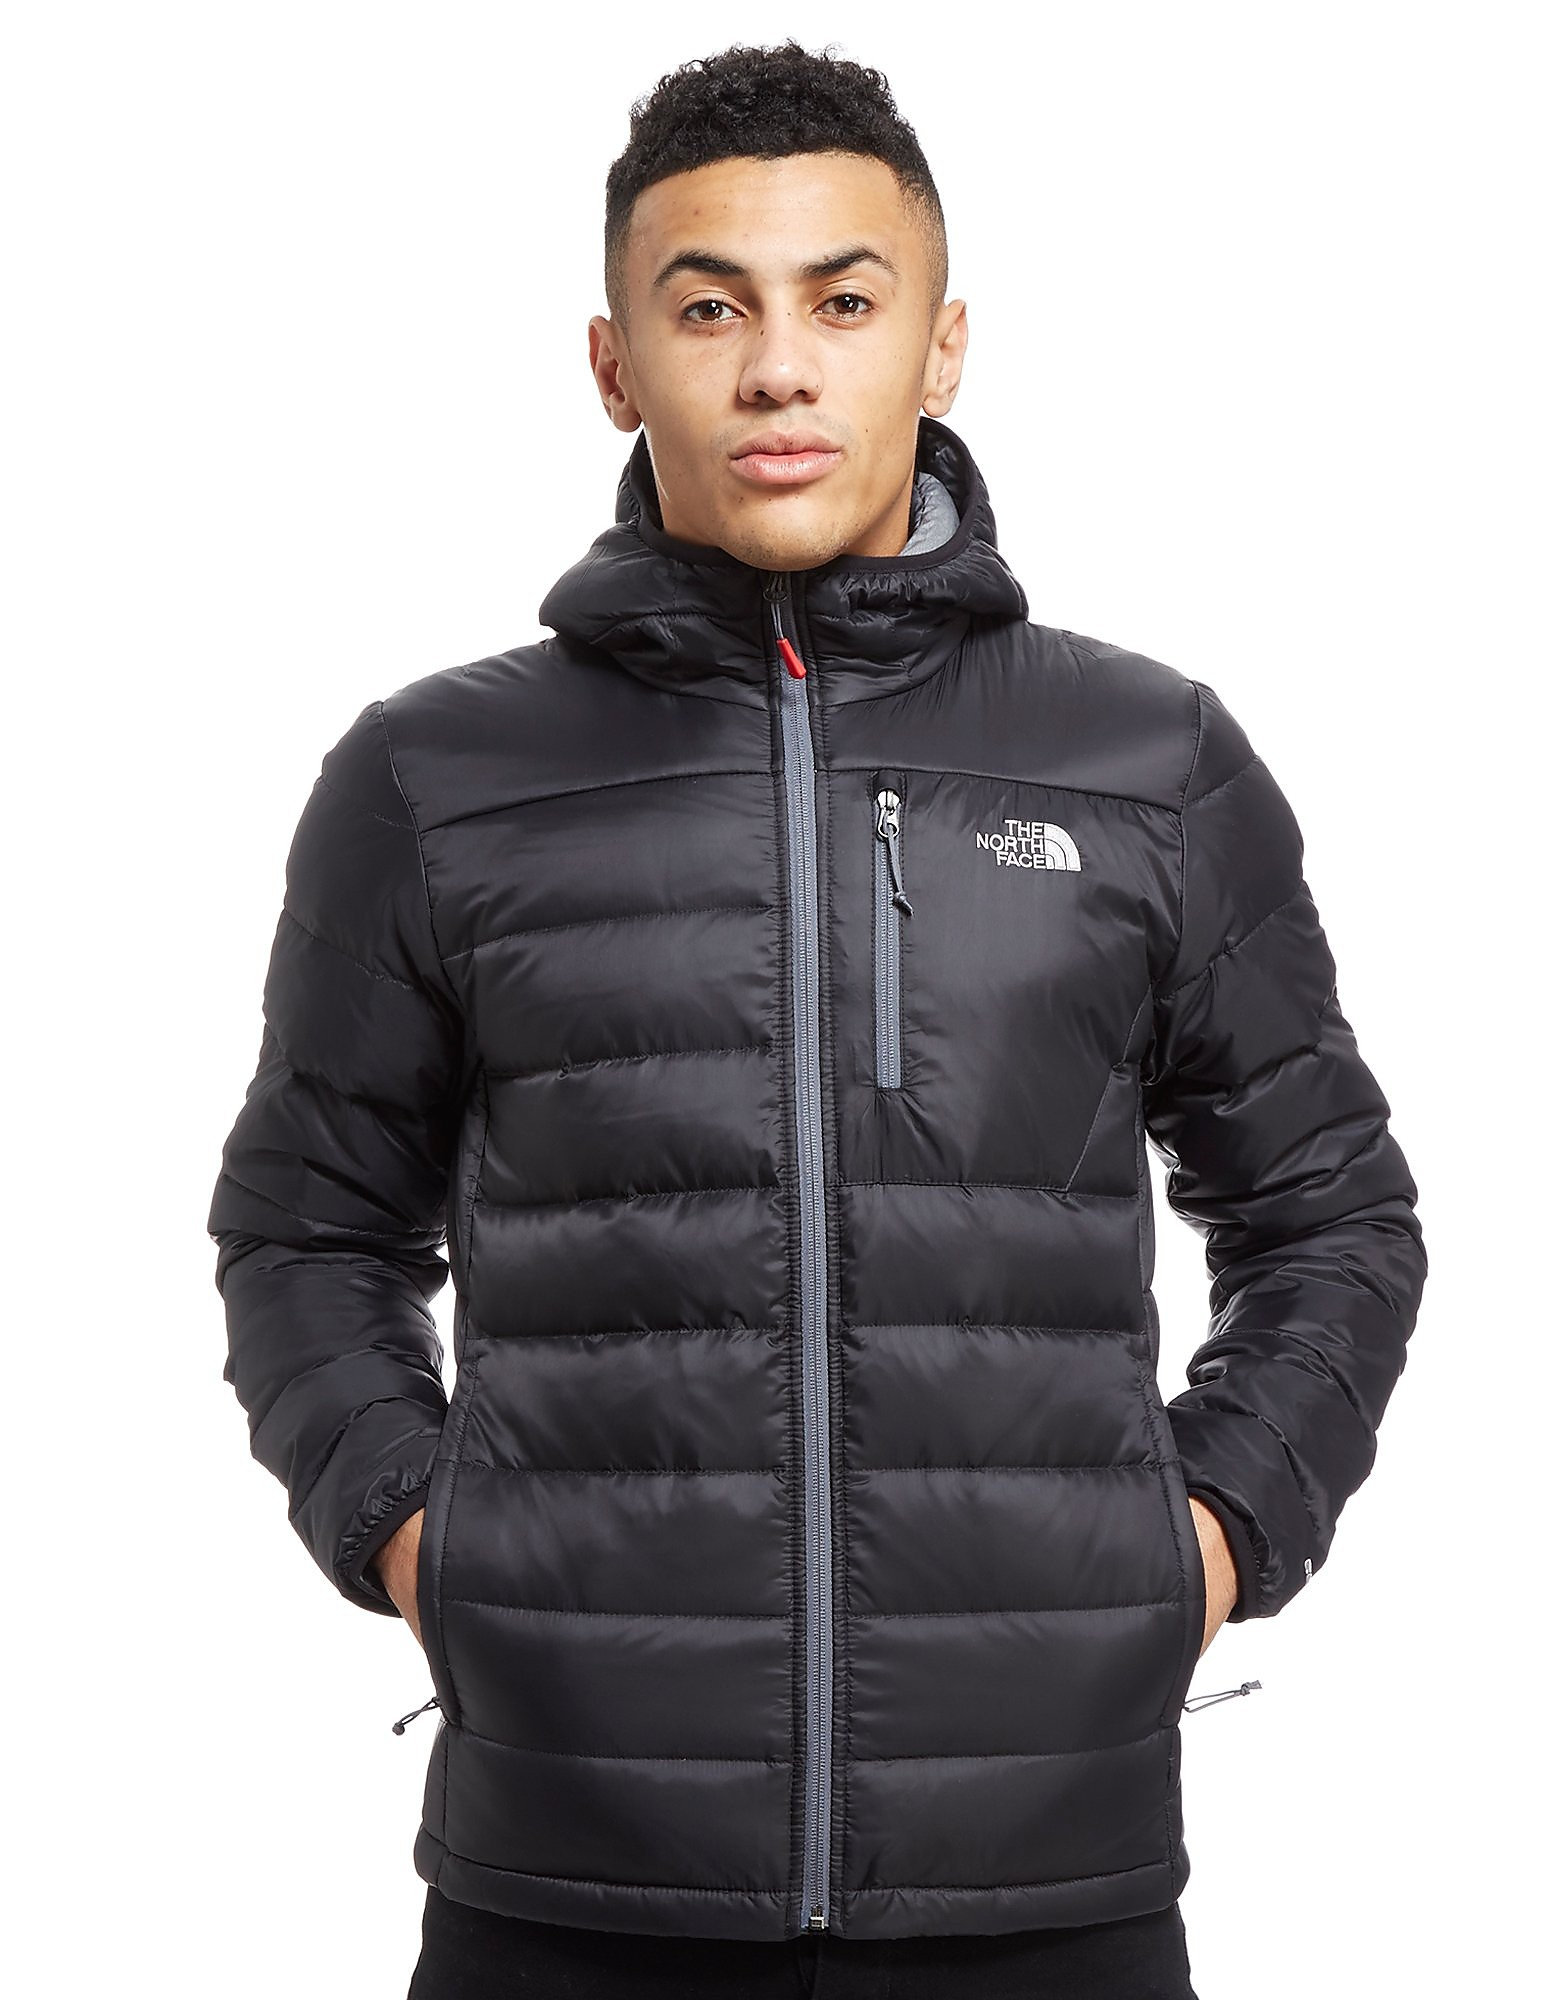 The North Face Aconcagua Puffa Daunenjacke